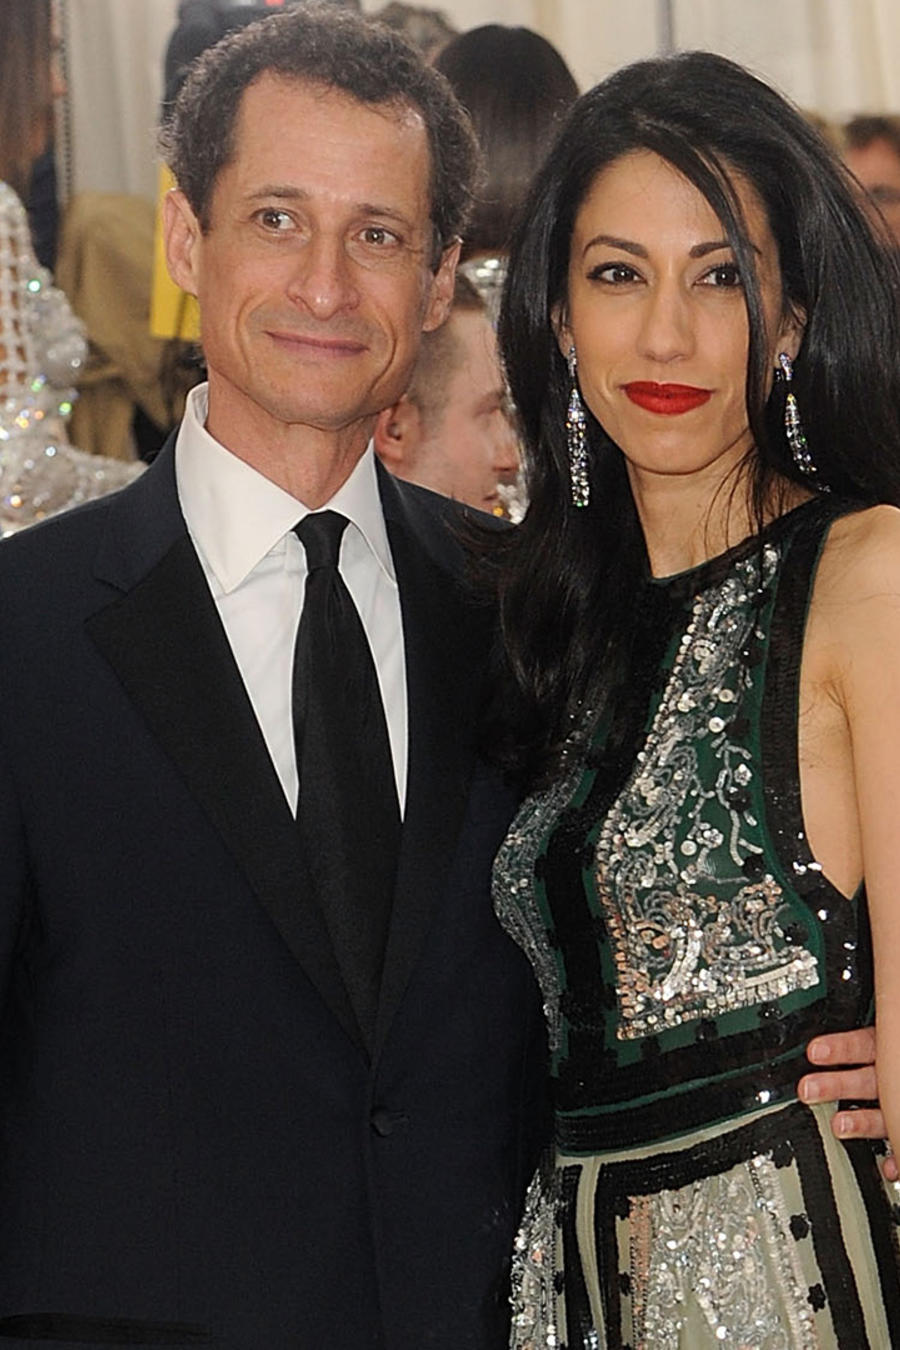 Anthony Weiner y Huma Abedin asisten a la gala de 'Manus x Machina: Fashion In An Age Of Technology' Costume Institute